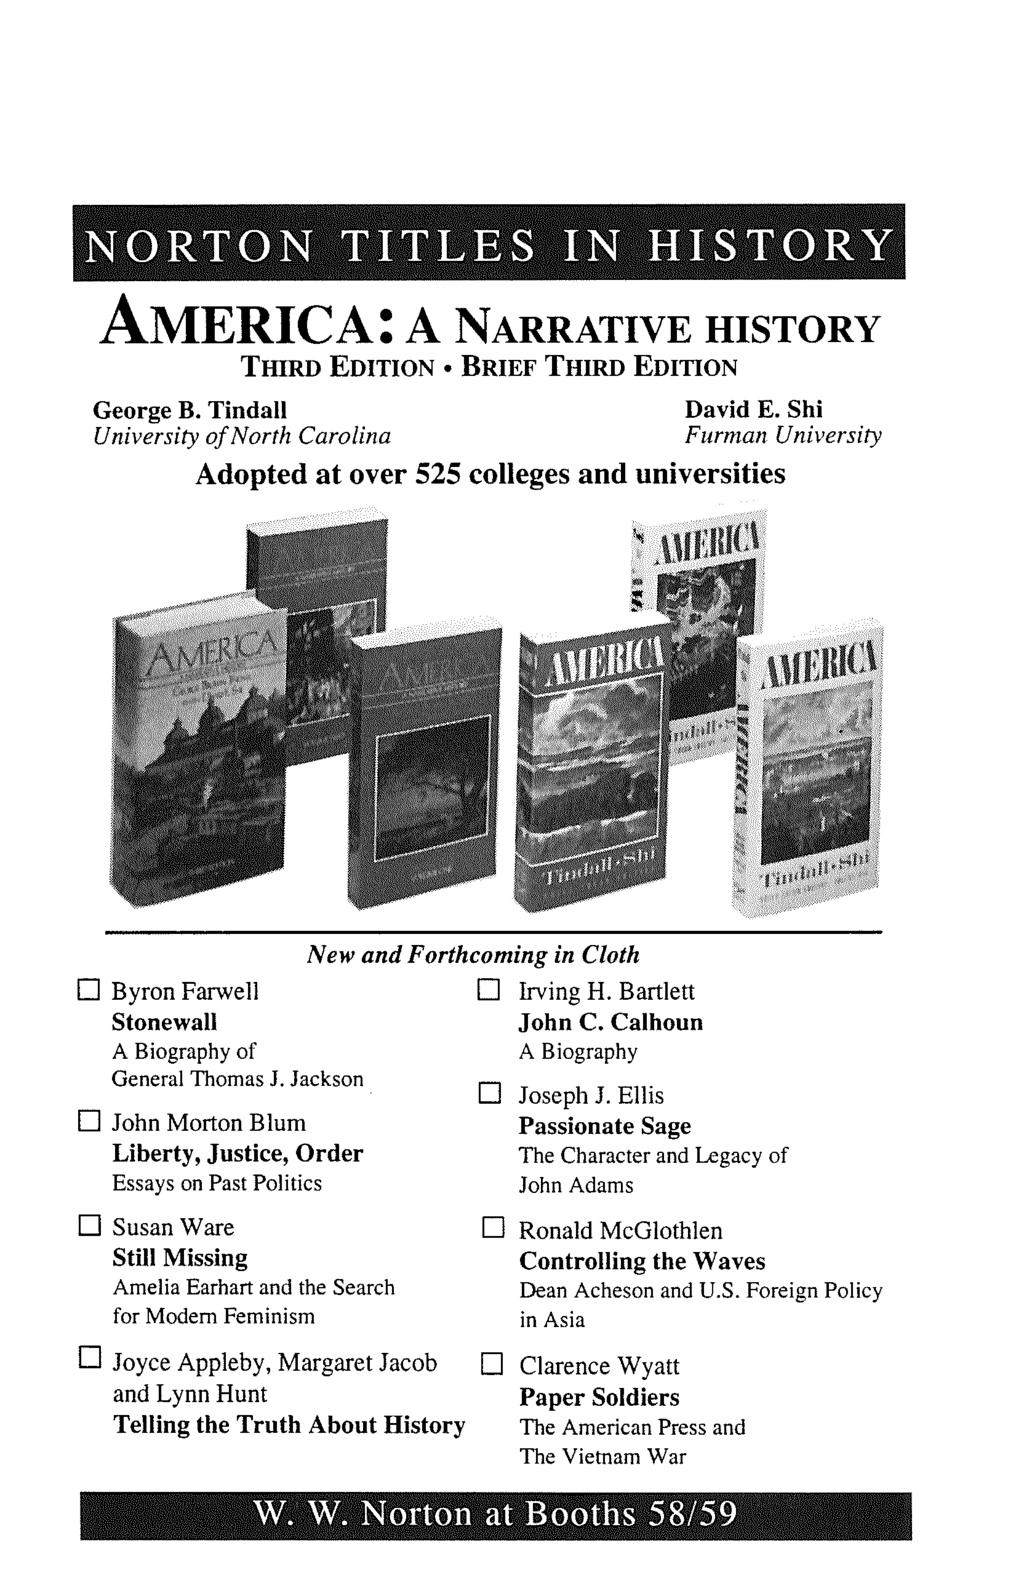 American historical association pdf norton titles in history america a narrative history third edition e brief third edition george fandeluxe Gallery